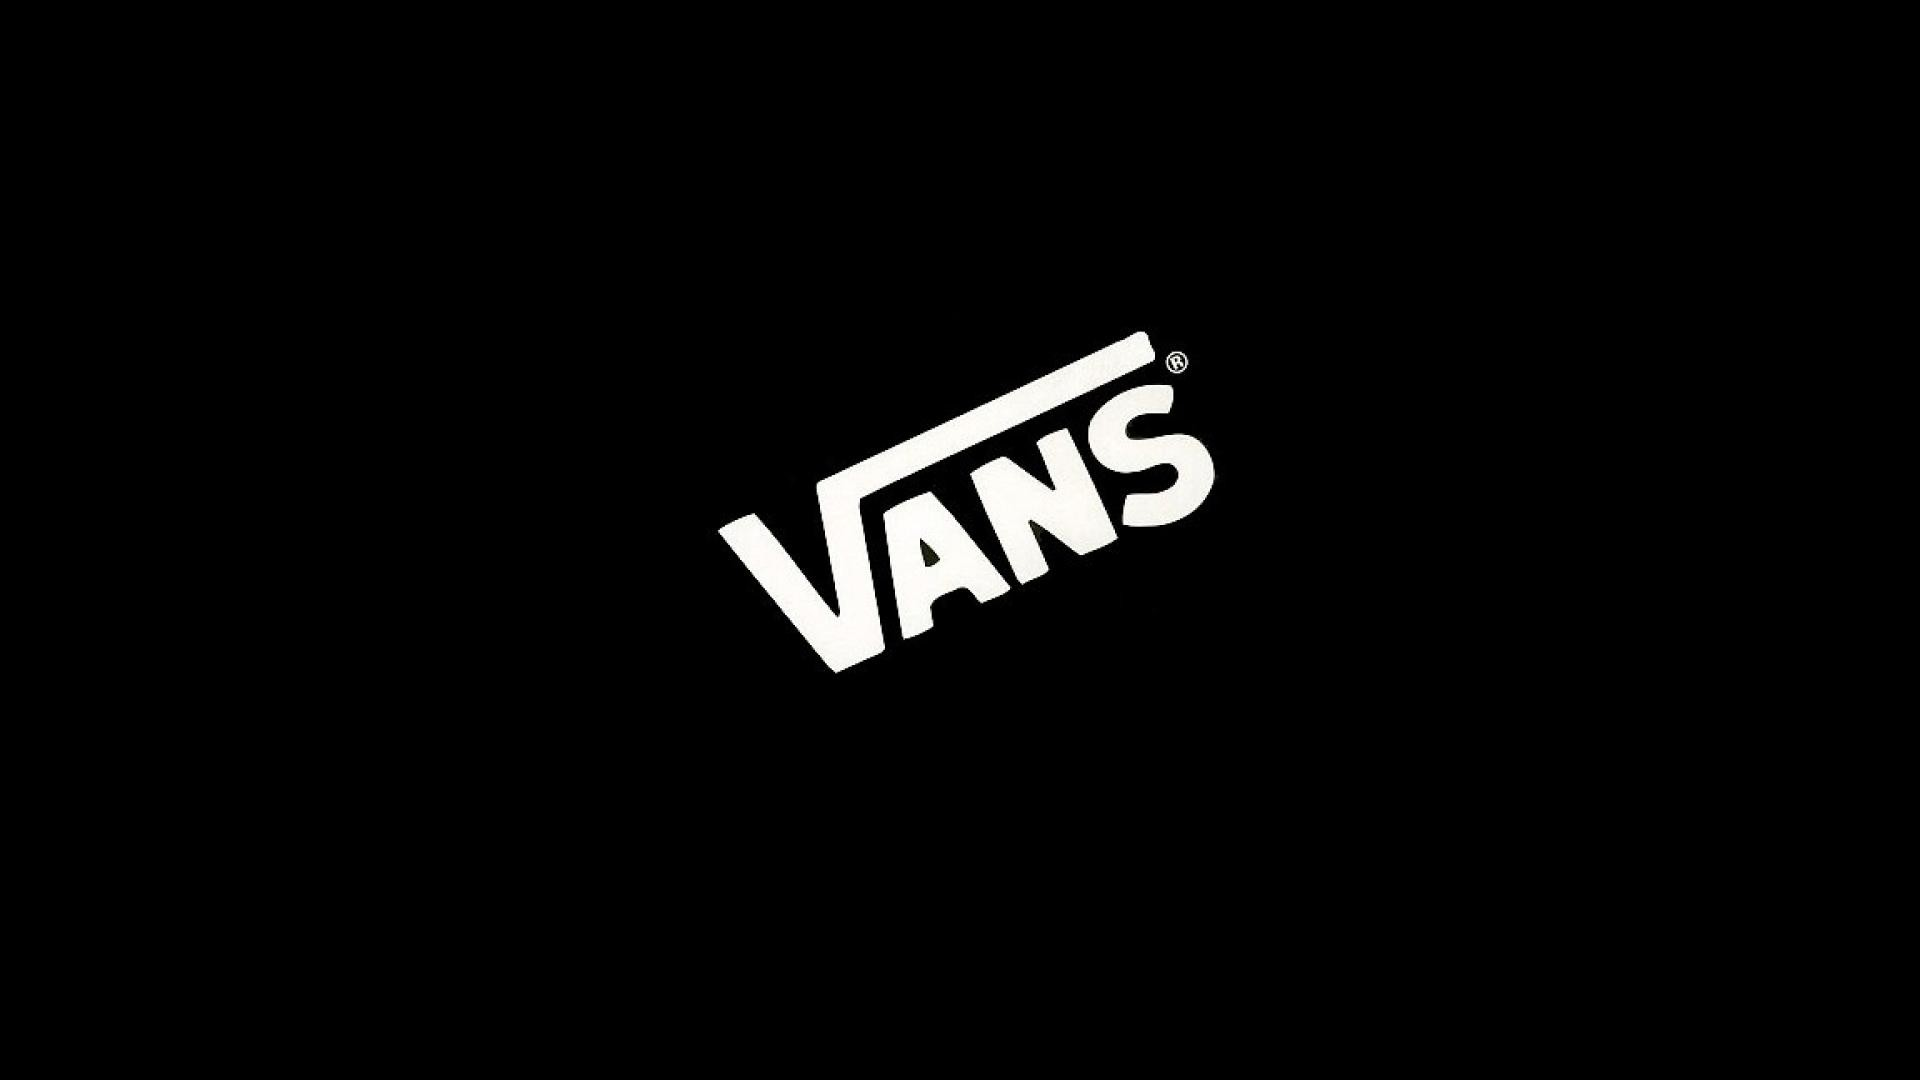 7e74dc8f81 Vans-Logo-Wallpapers-HD-Free-Download 1920x1200